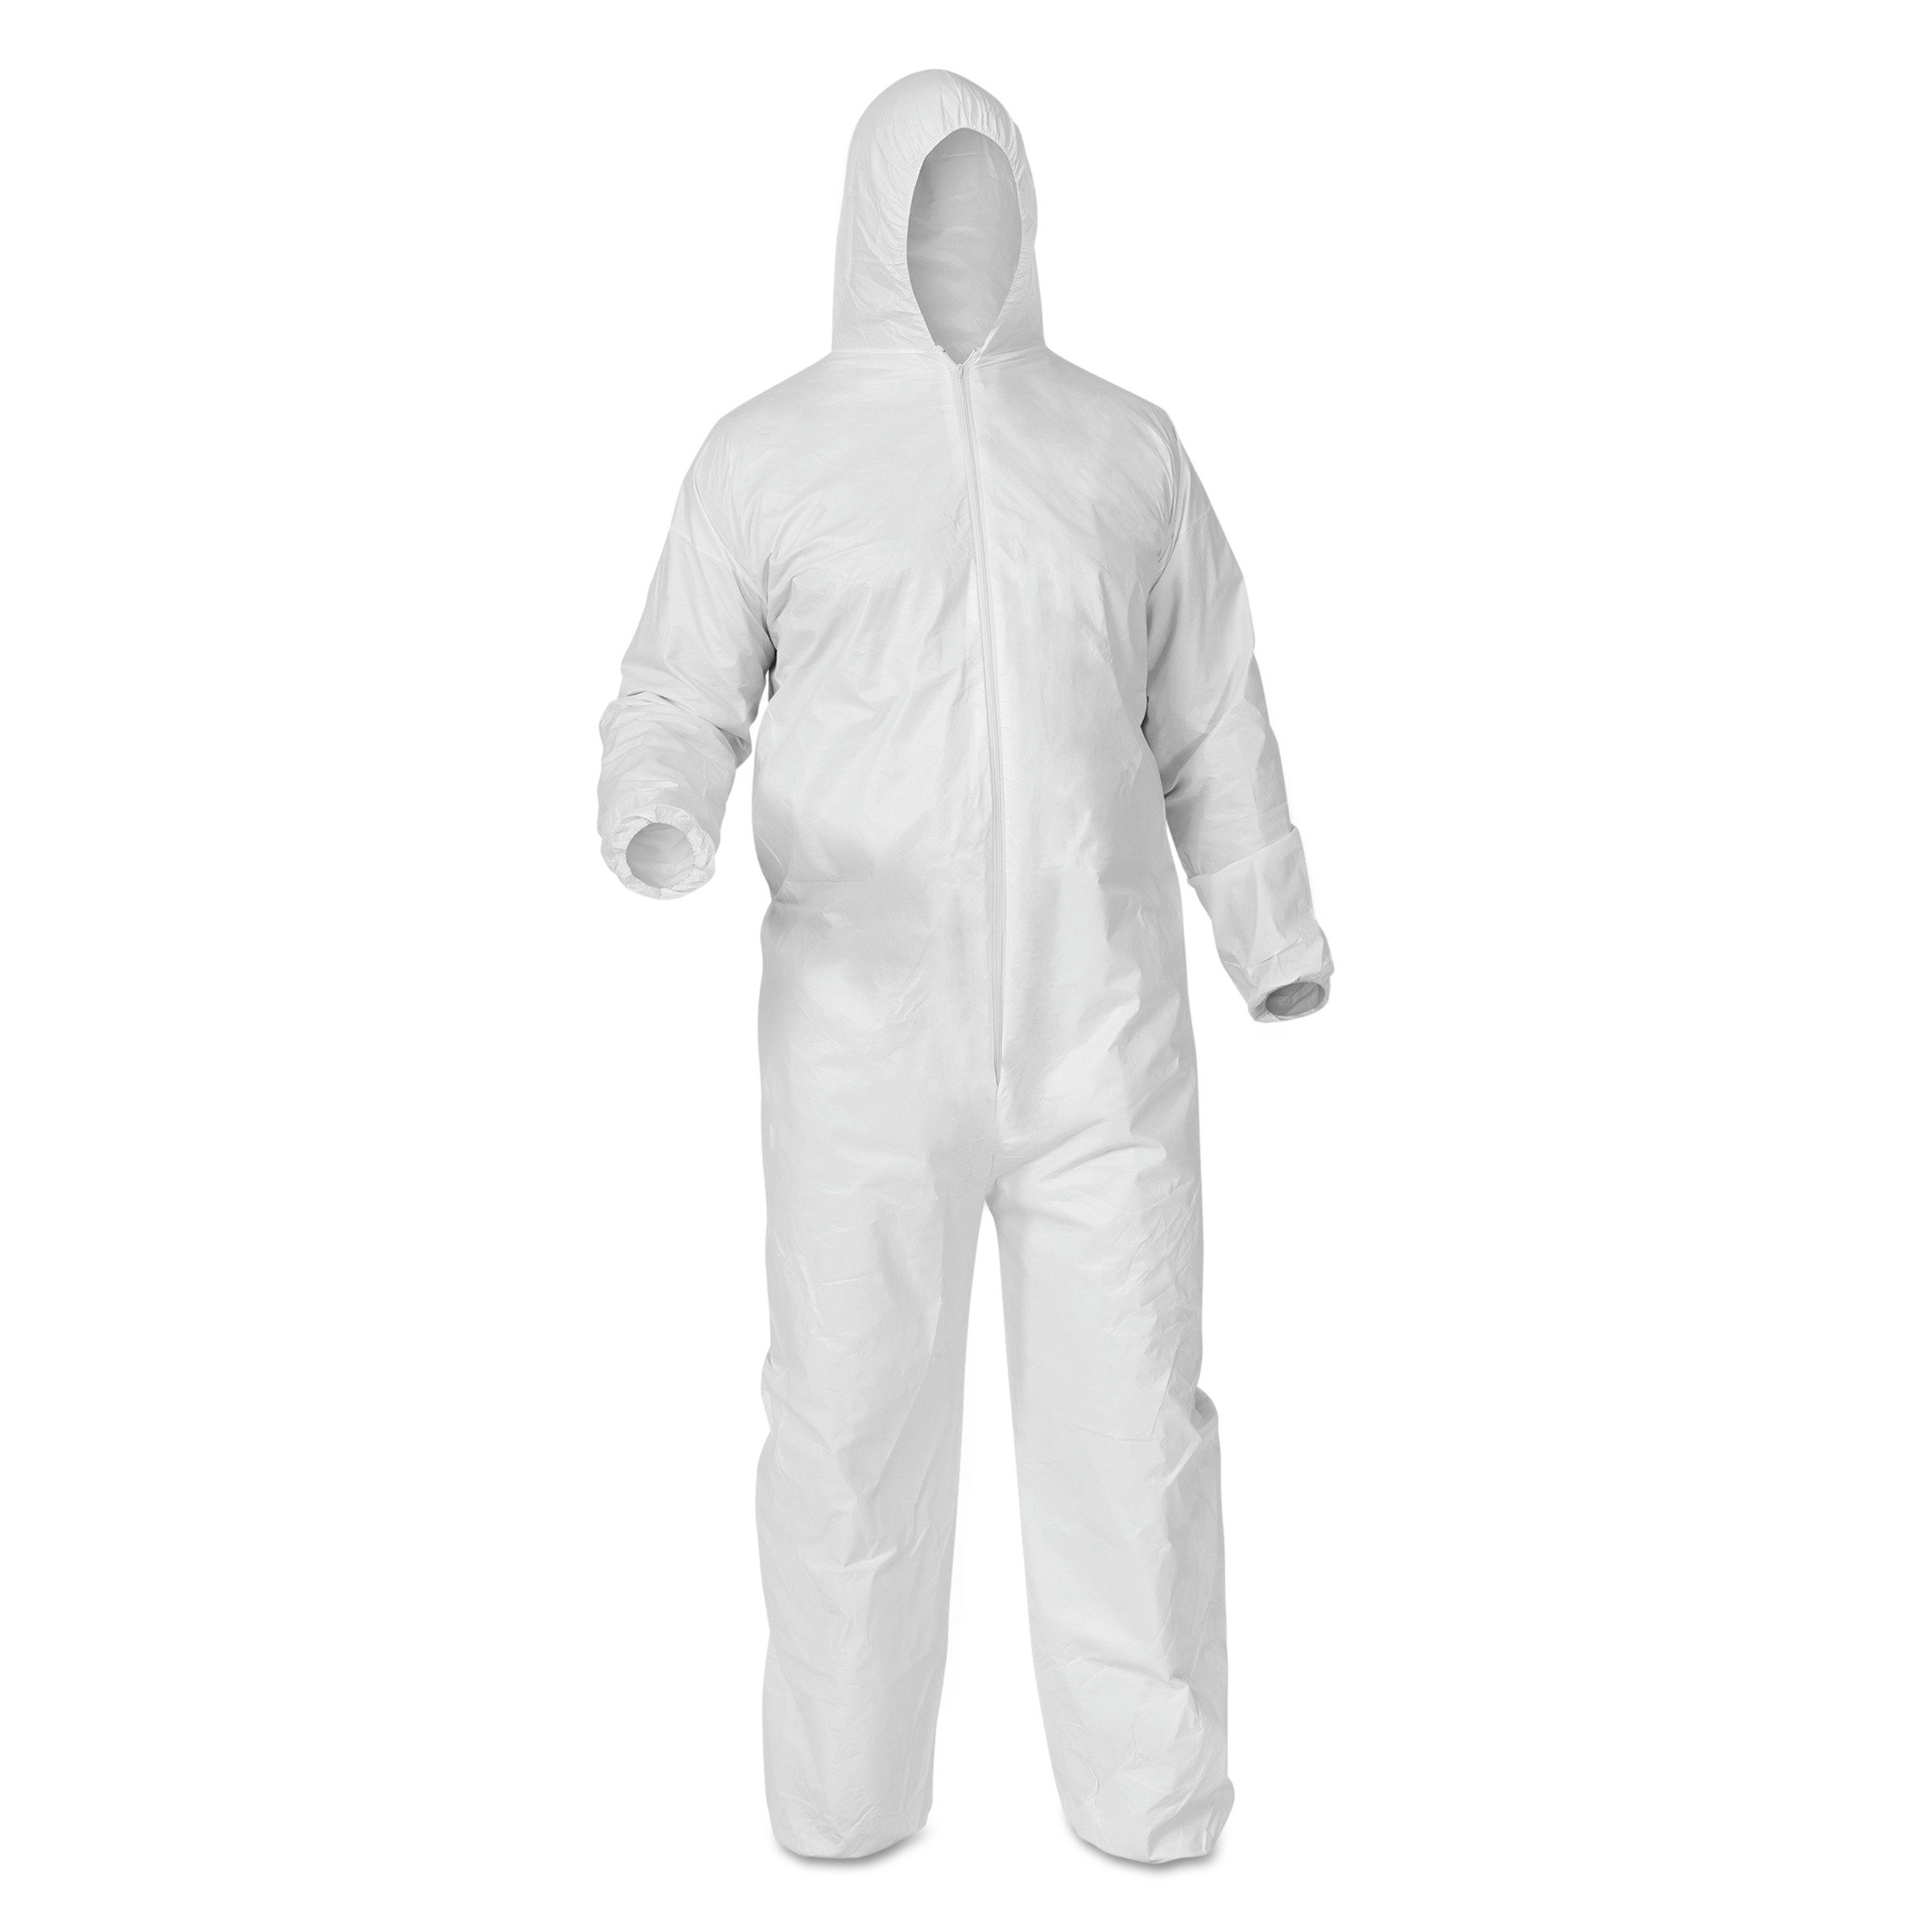 A35 Coveralls, Hooded, 2XL, White, 25 Per Carton by Kimberly Clark